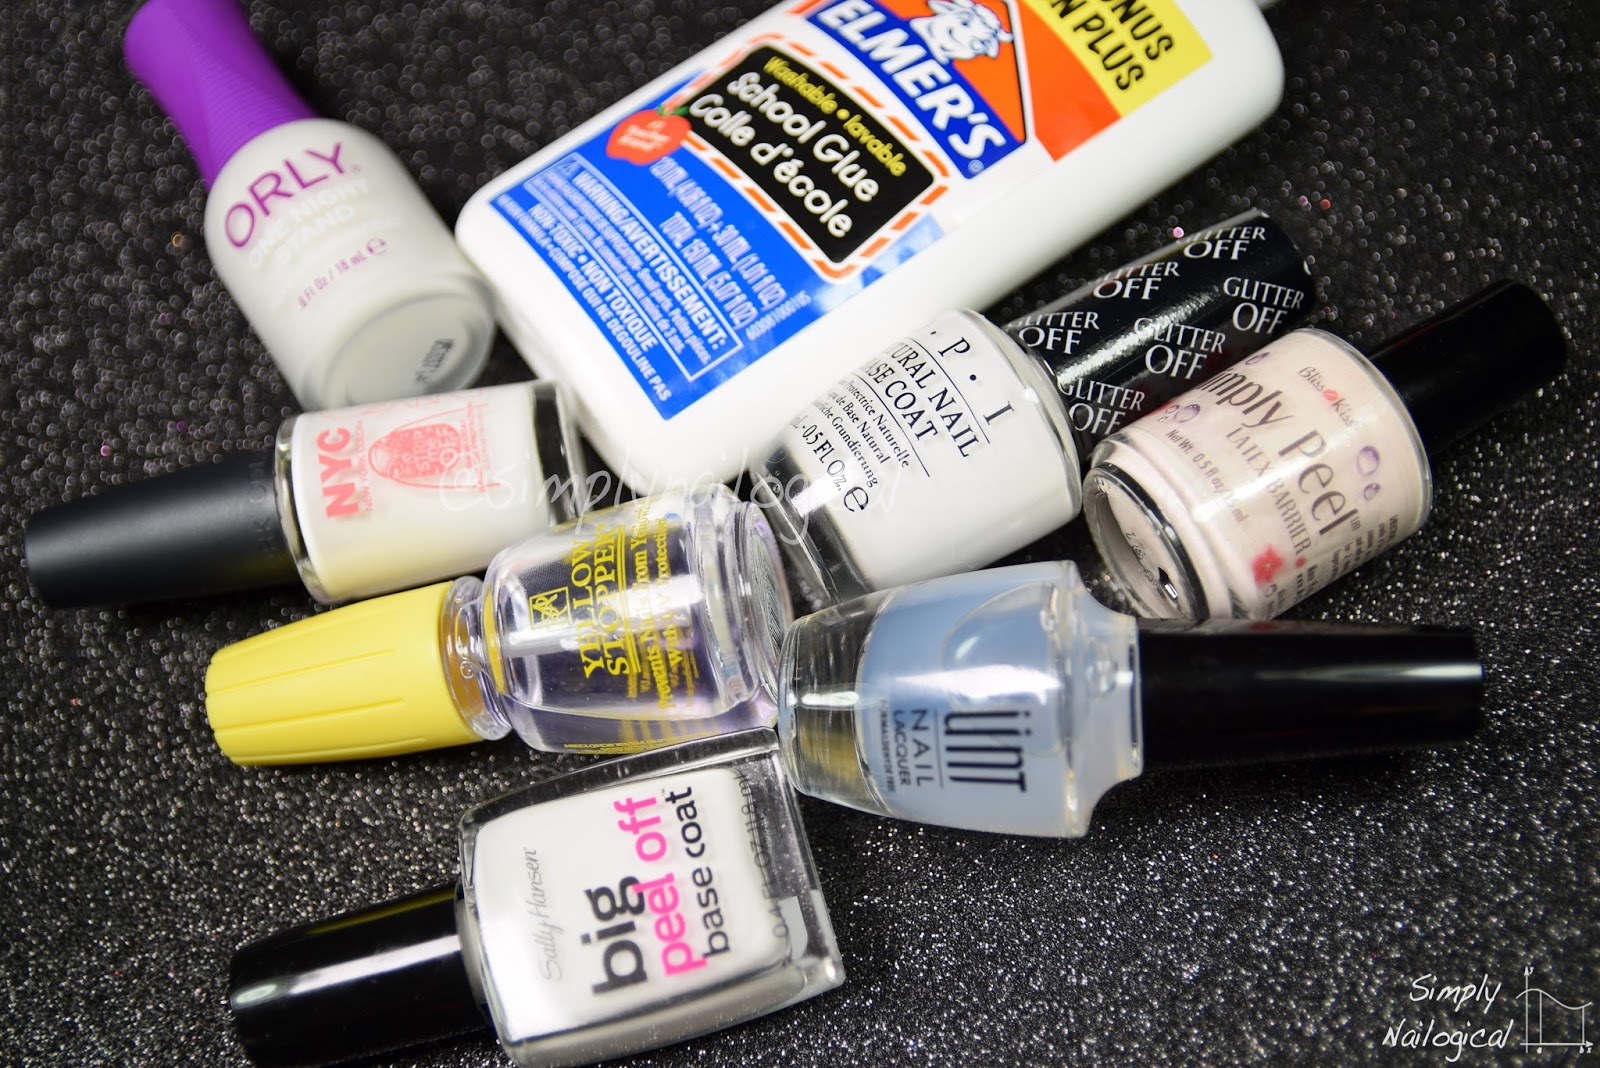 Simply Nailogical: Best Peel-Off Base Coat?!?!?!?